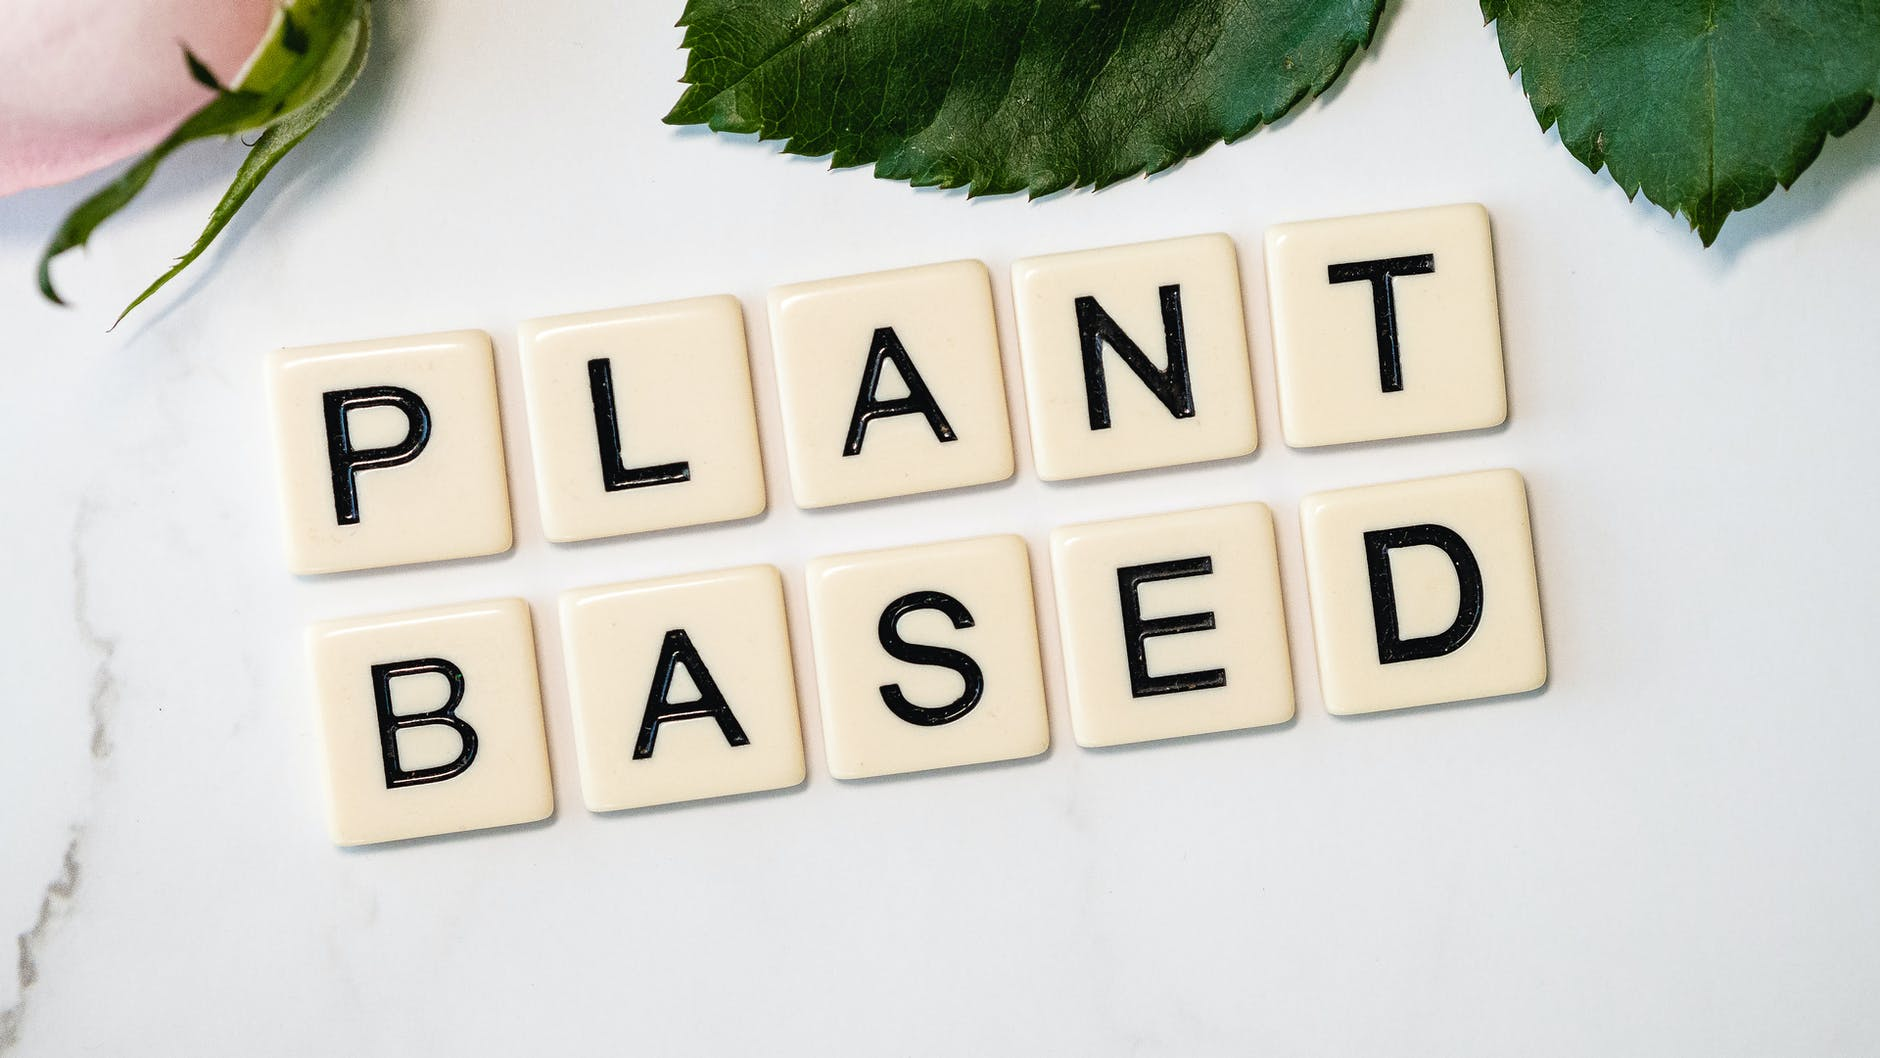 Scrabble letters that say plant based